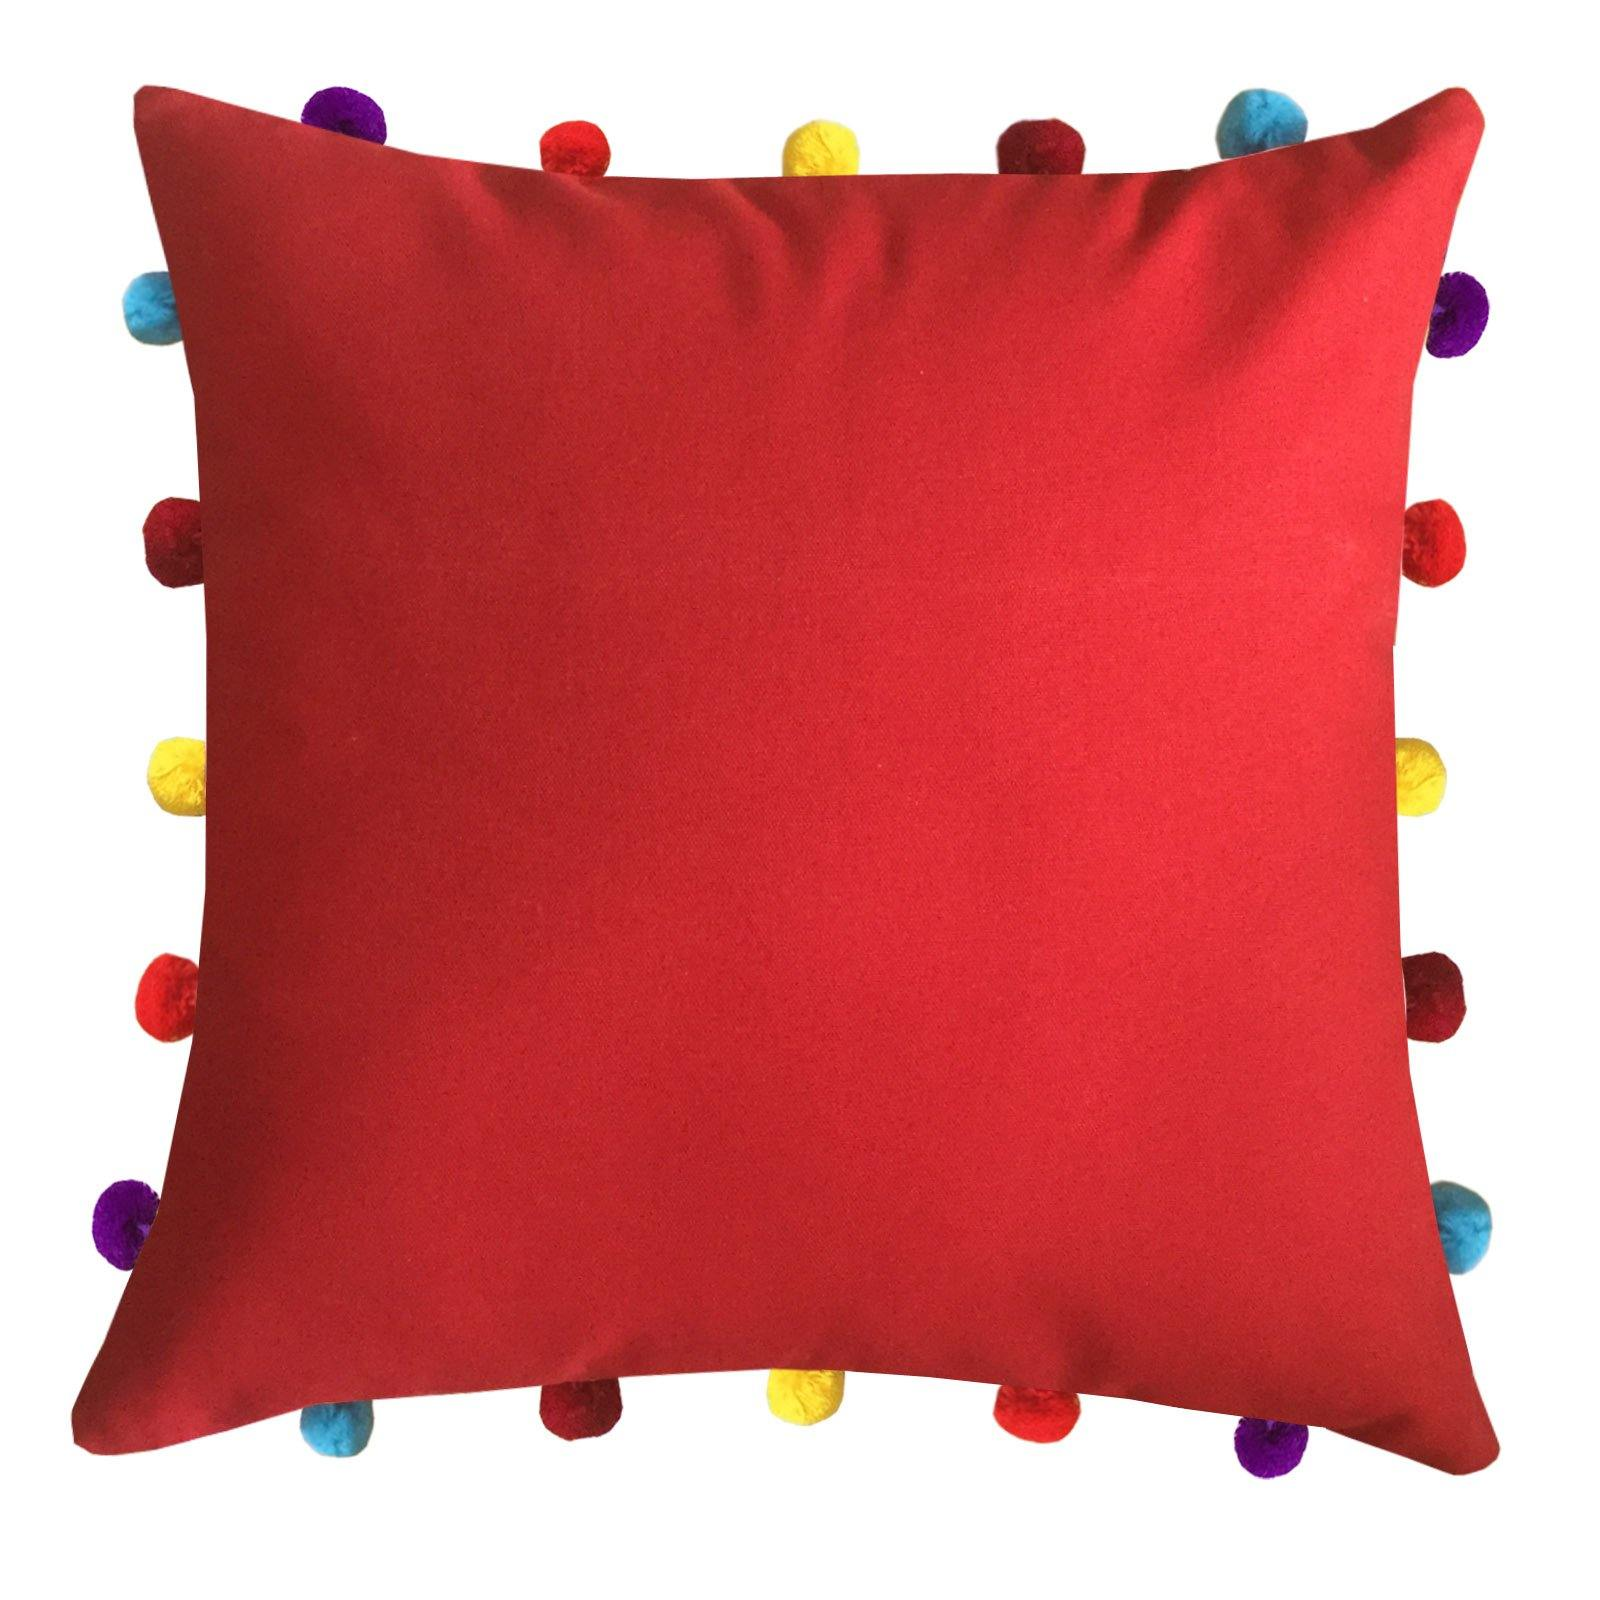 "Lushomes Tomato Cushion Cover with Colorful pom poms (Single pc, 16 x 16"") - Lushomes"